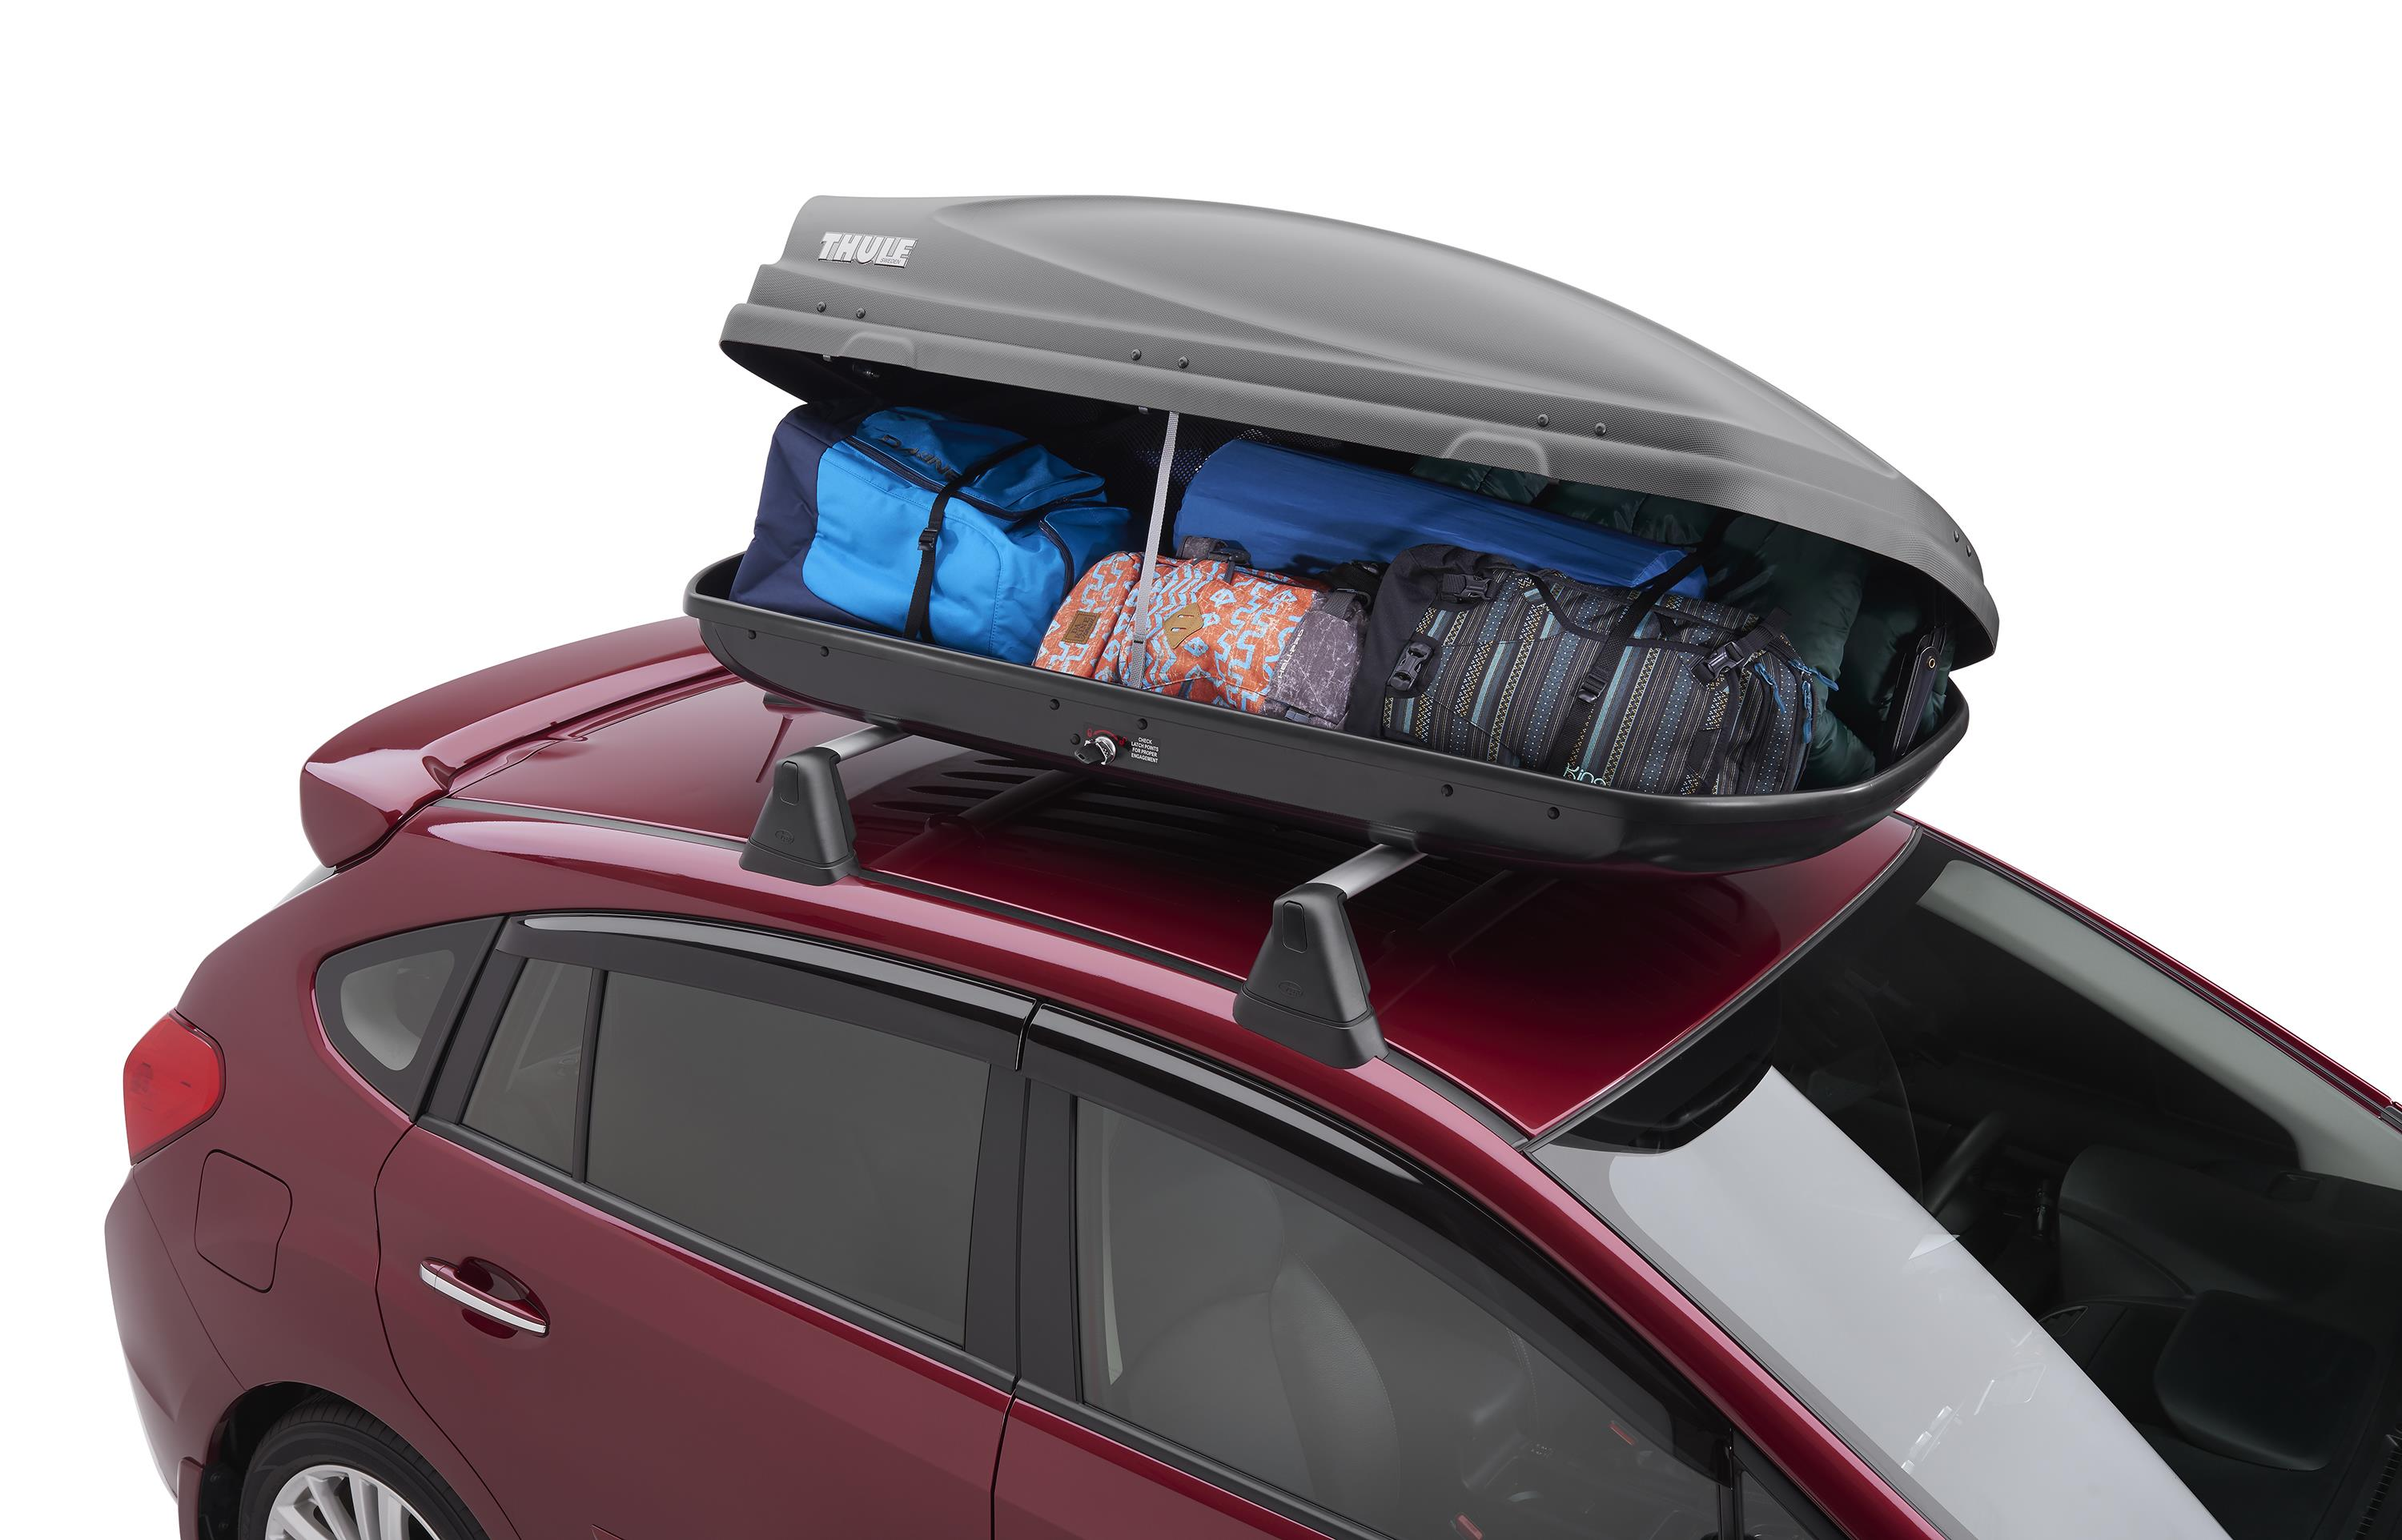 2016 Subaru Outback Roof Cargo Carrier Provides Side